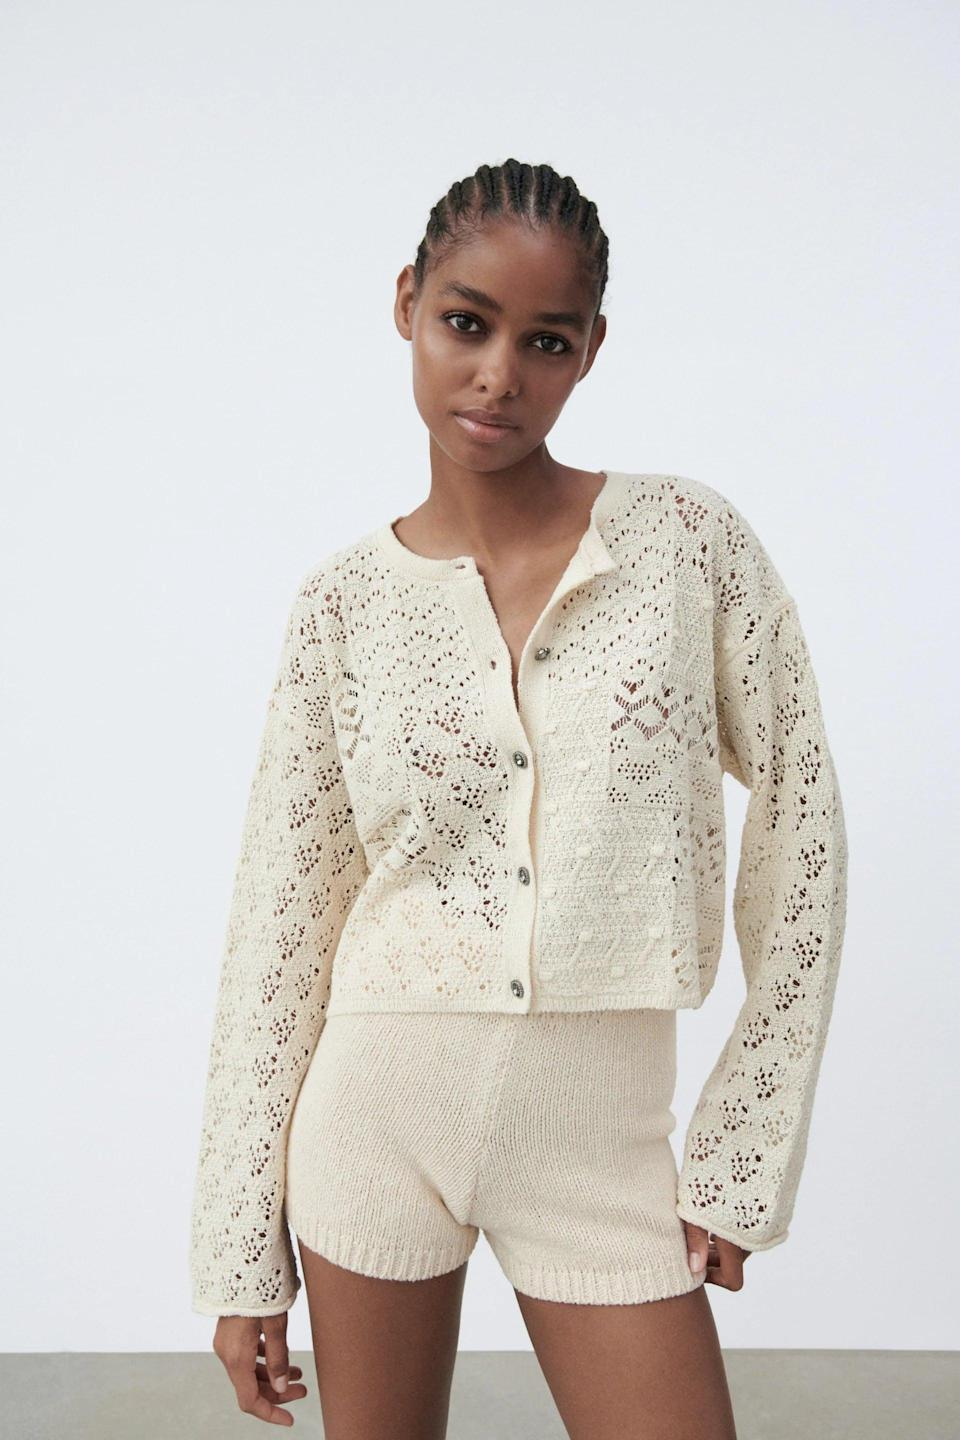 <p>This <span>Zara Jewel Button Knit Cardigan</span> ($40) is a sweater you could wear for a night out or a casual weekend with friends. The jewel buttons make it that much prettier.</p>